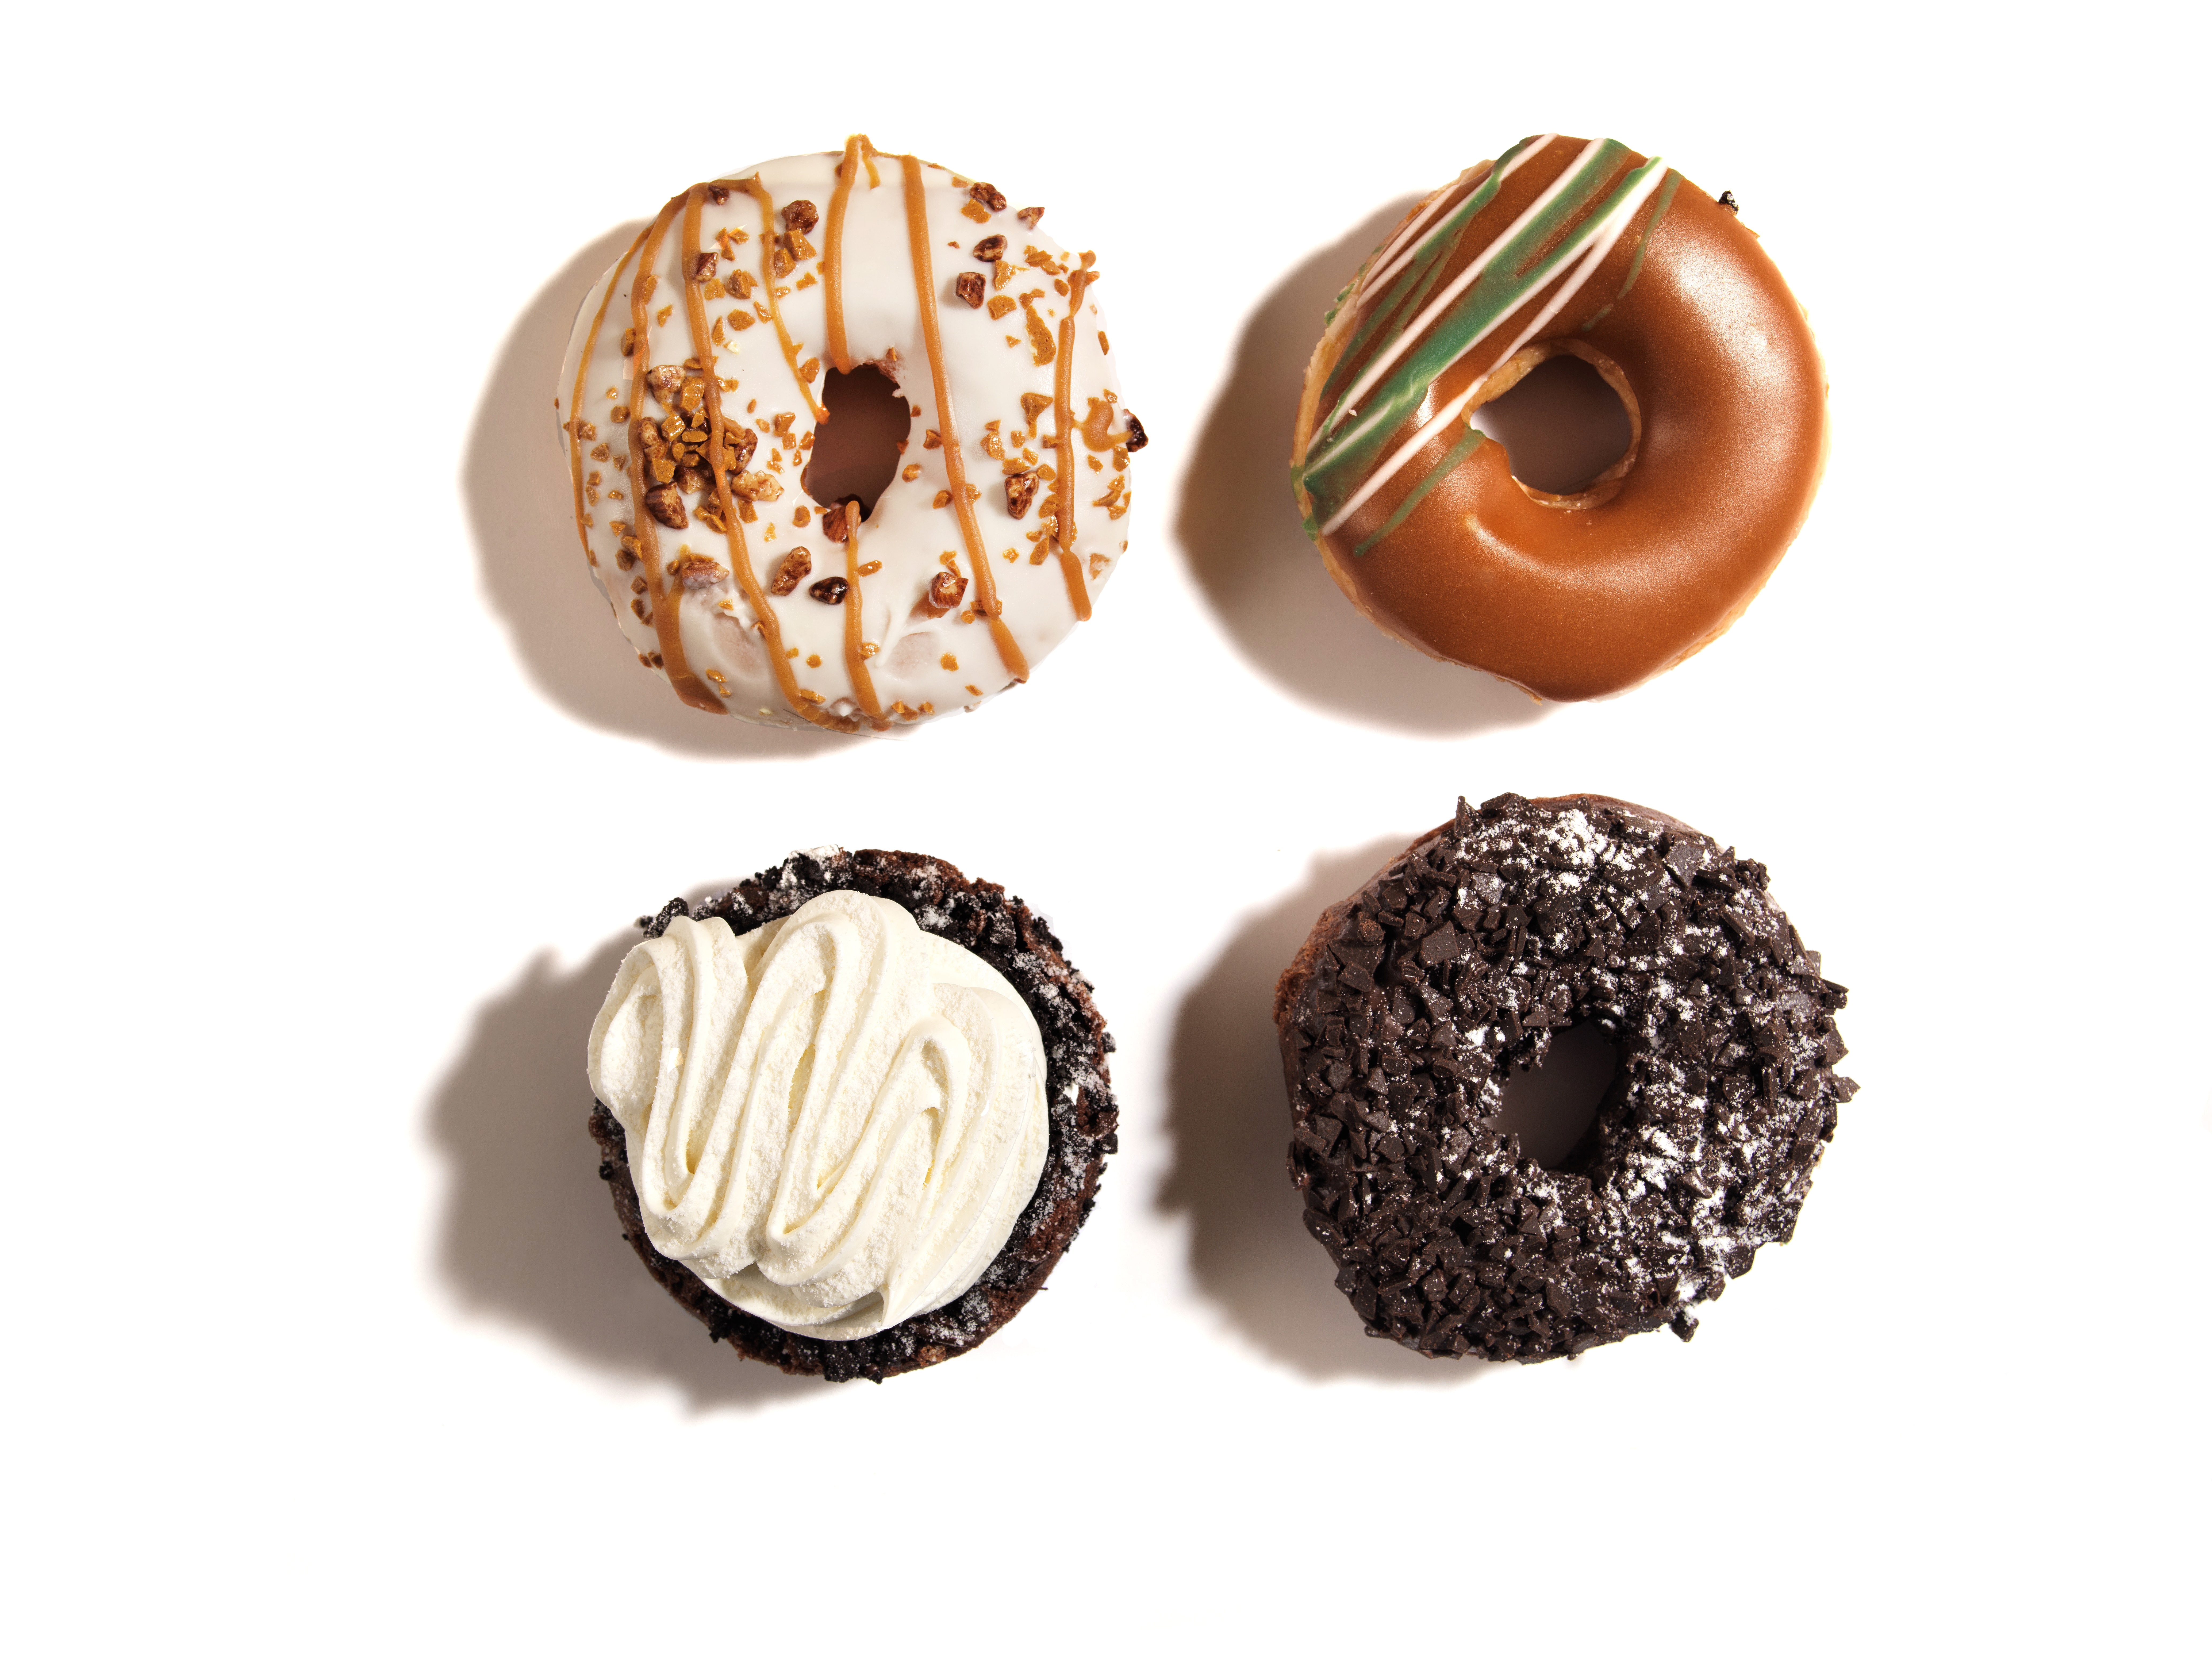 How to stop sugar cravings?